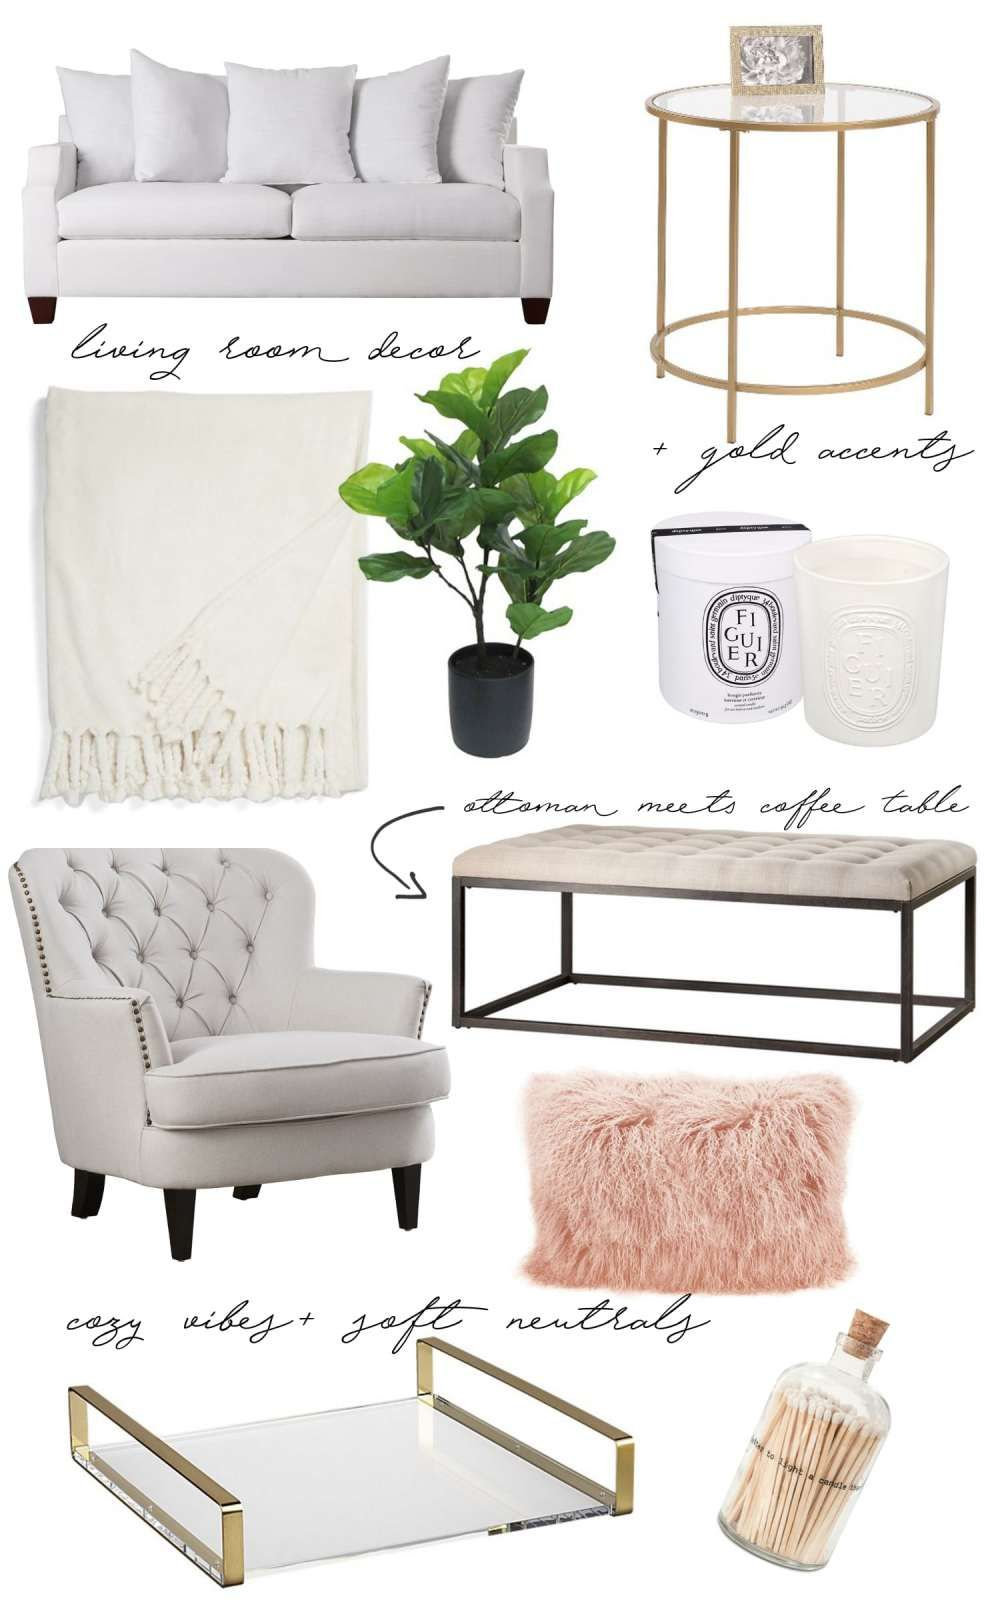 Home decor wish list fancy things living room the fancy - Decorative things for living room ...